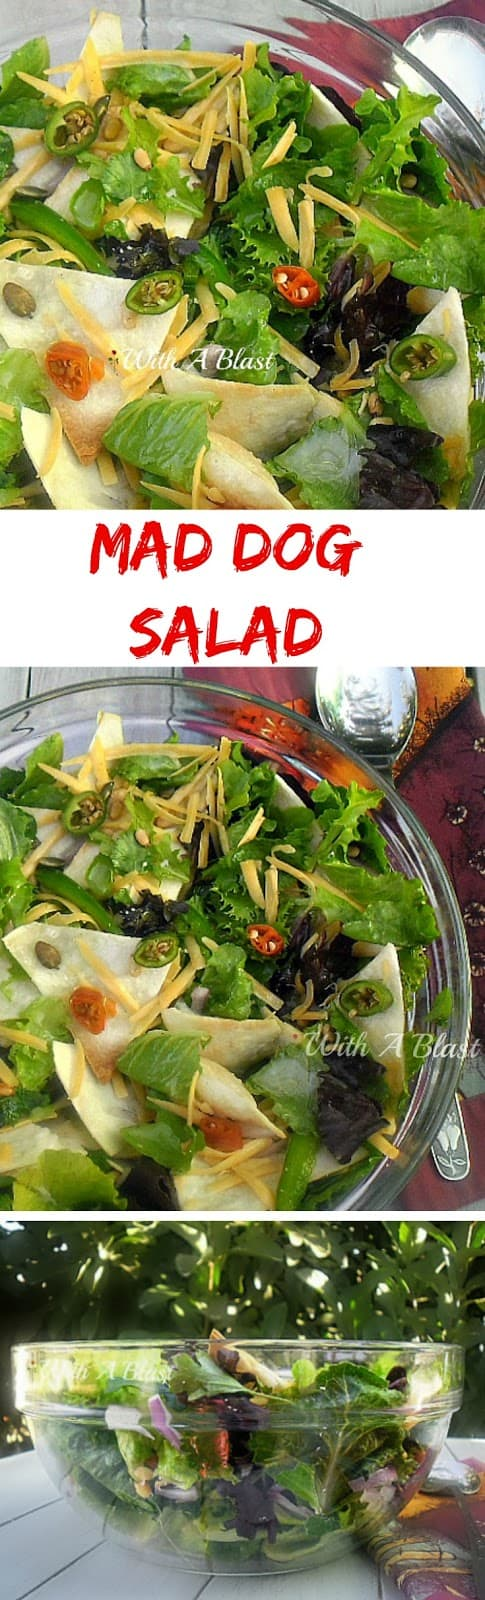 Everything nice and spicy in this Mad Dog Salad ! Crunchy Tortilla chips, herbs, lettuce, nuts, seeds and so much more #CrunchySalad #SaladRecipes #SpicySalad #TortillaChipSalad